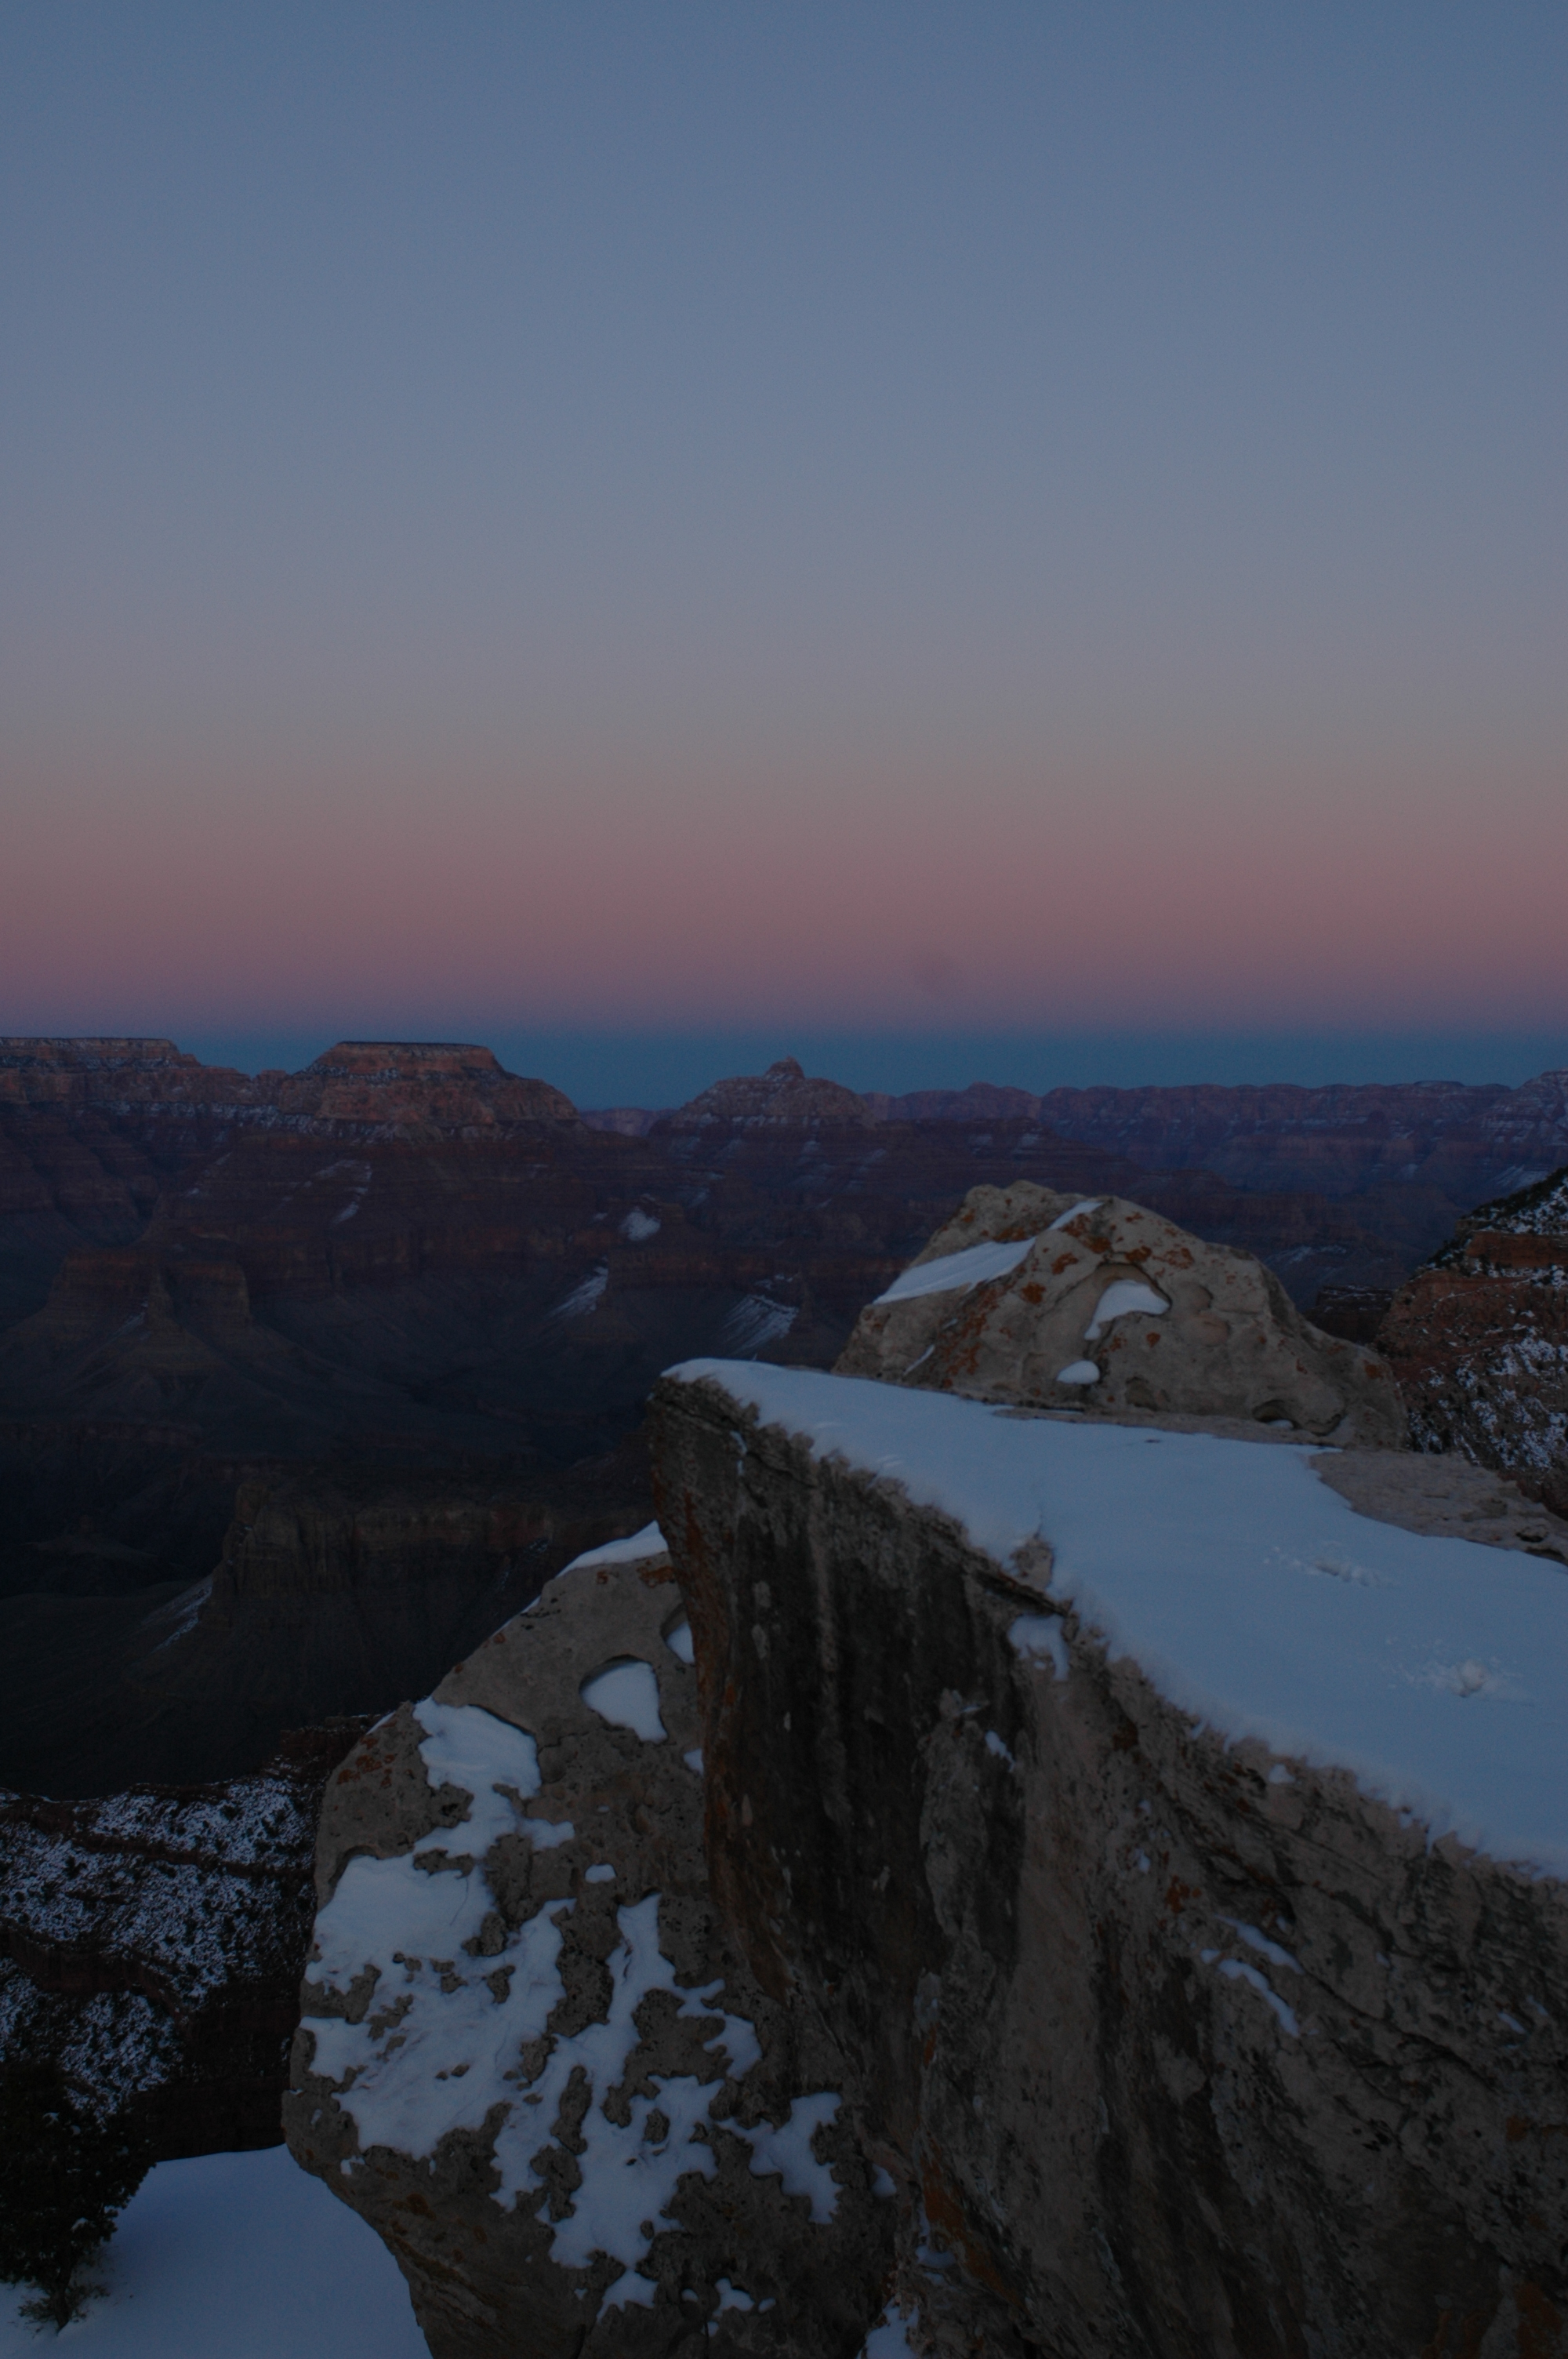 Joe Dobrow photo of winter at Grand Canyon's Mather Point